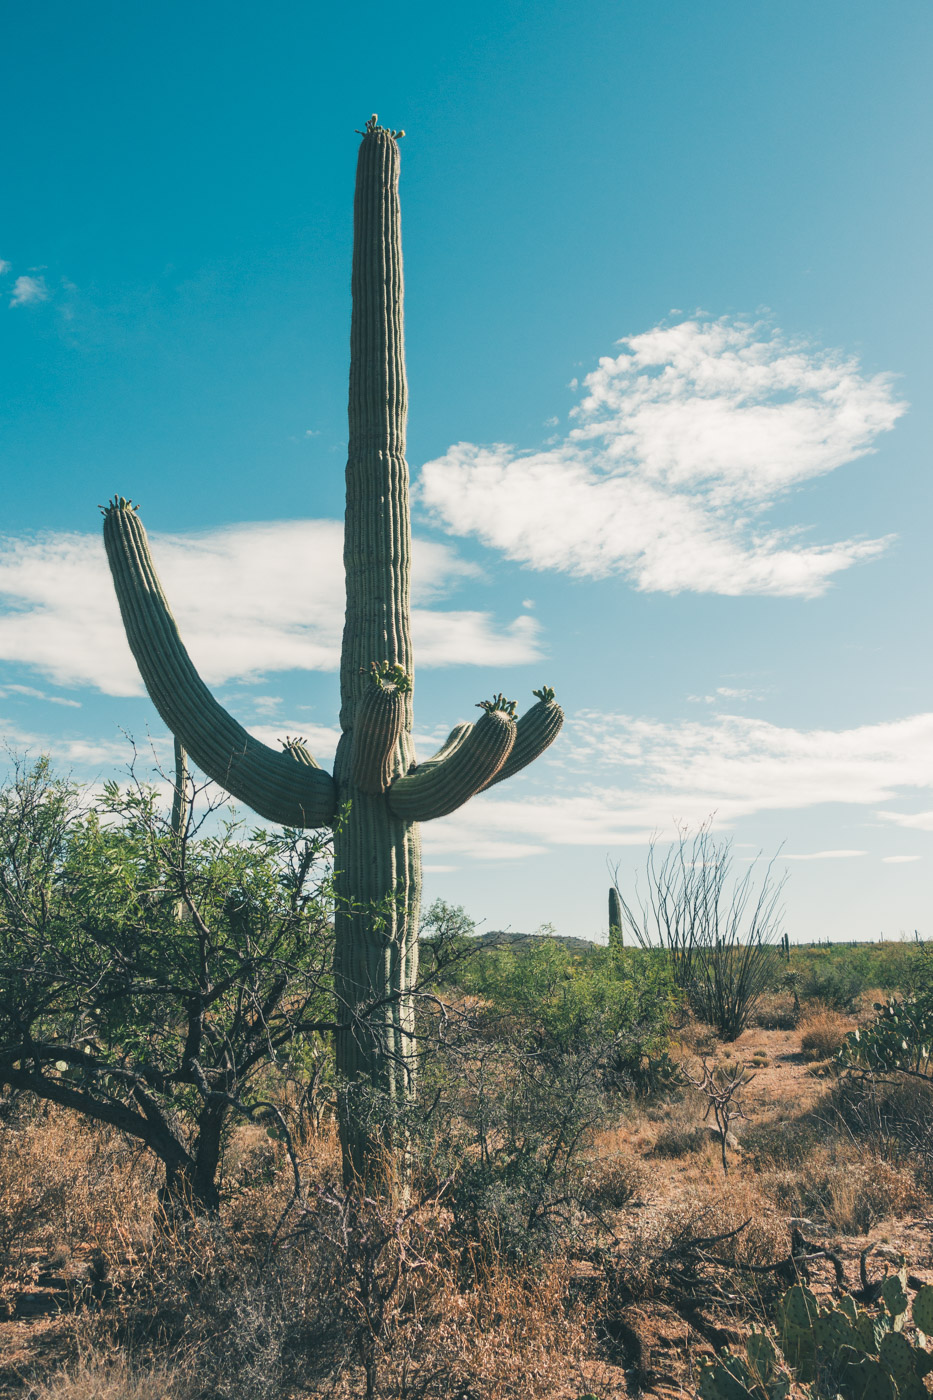 Saguaro cactus at Saguaro National Park, Texas